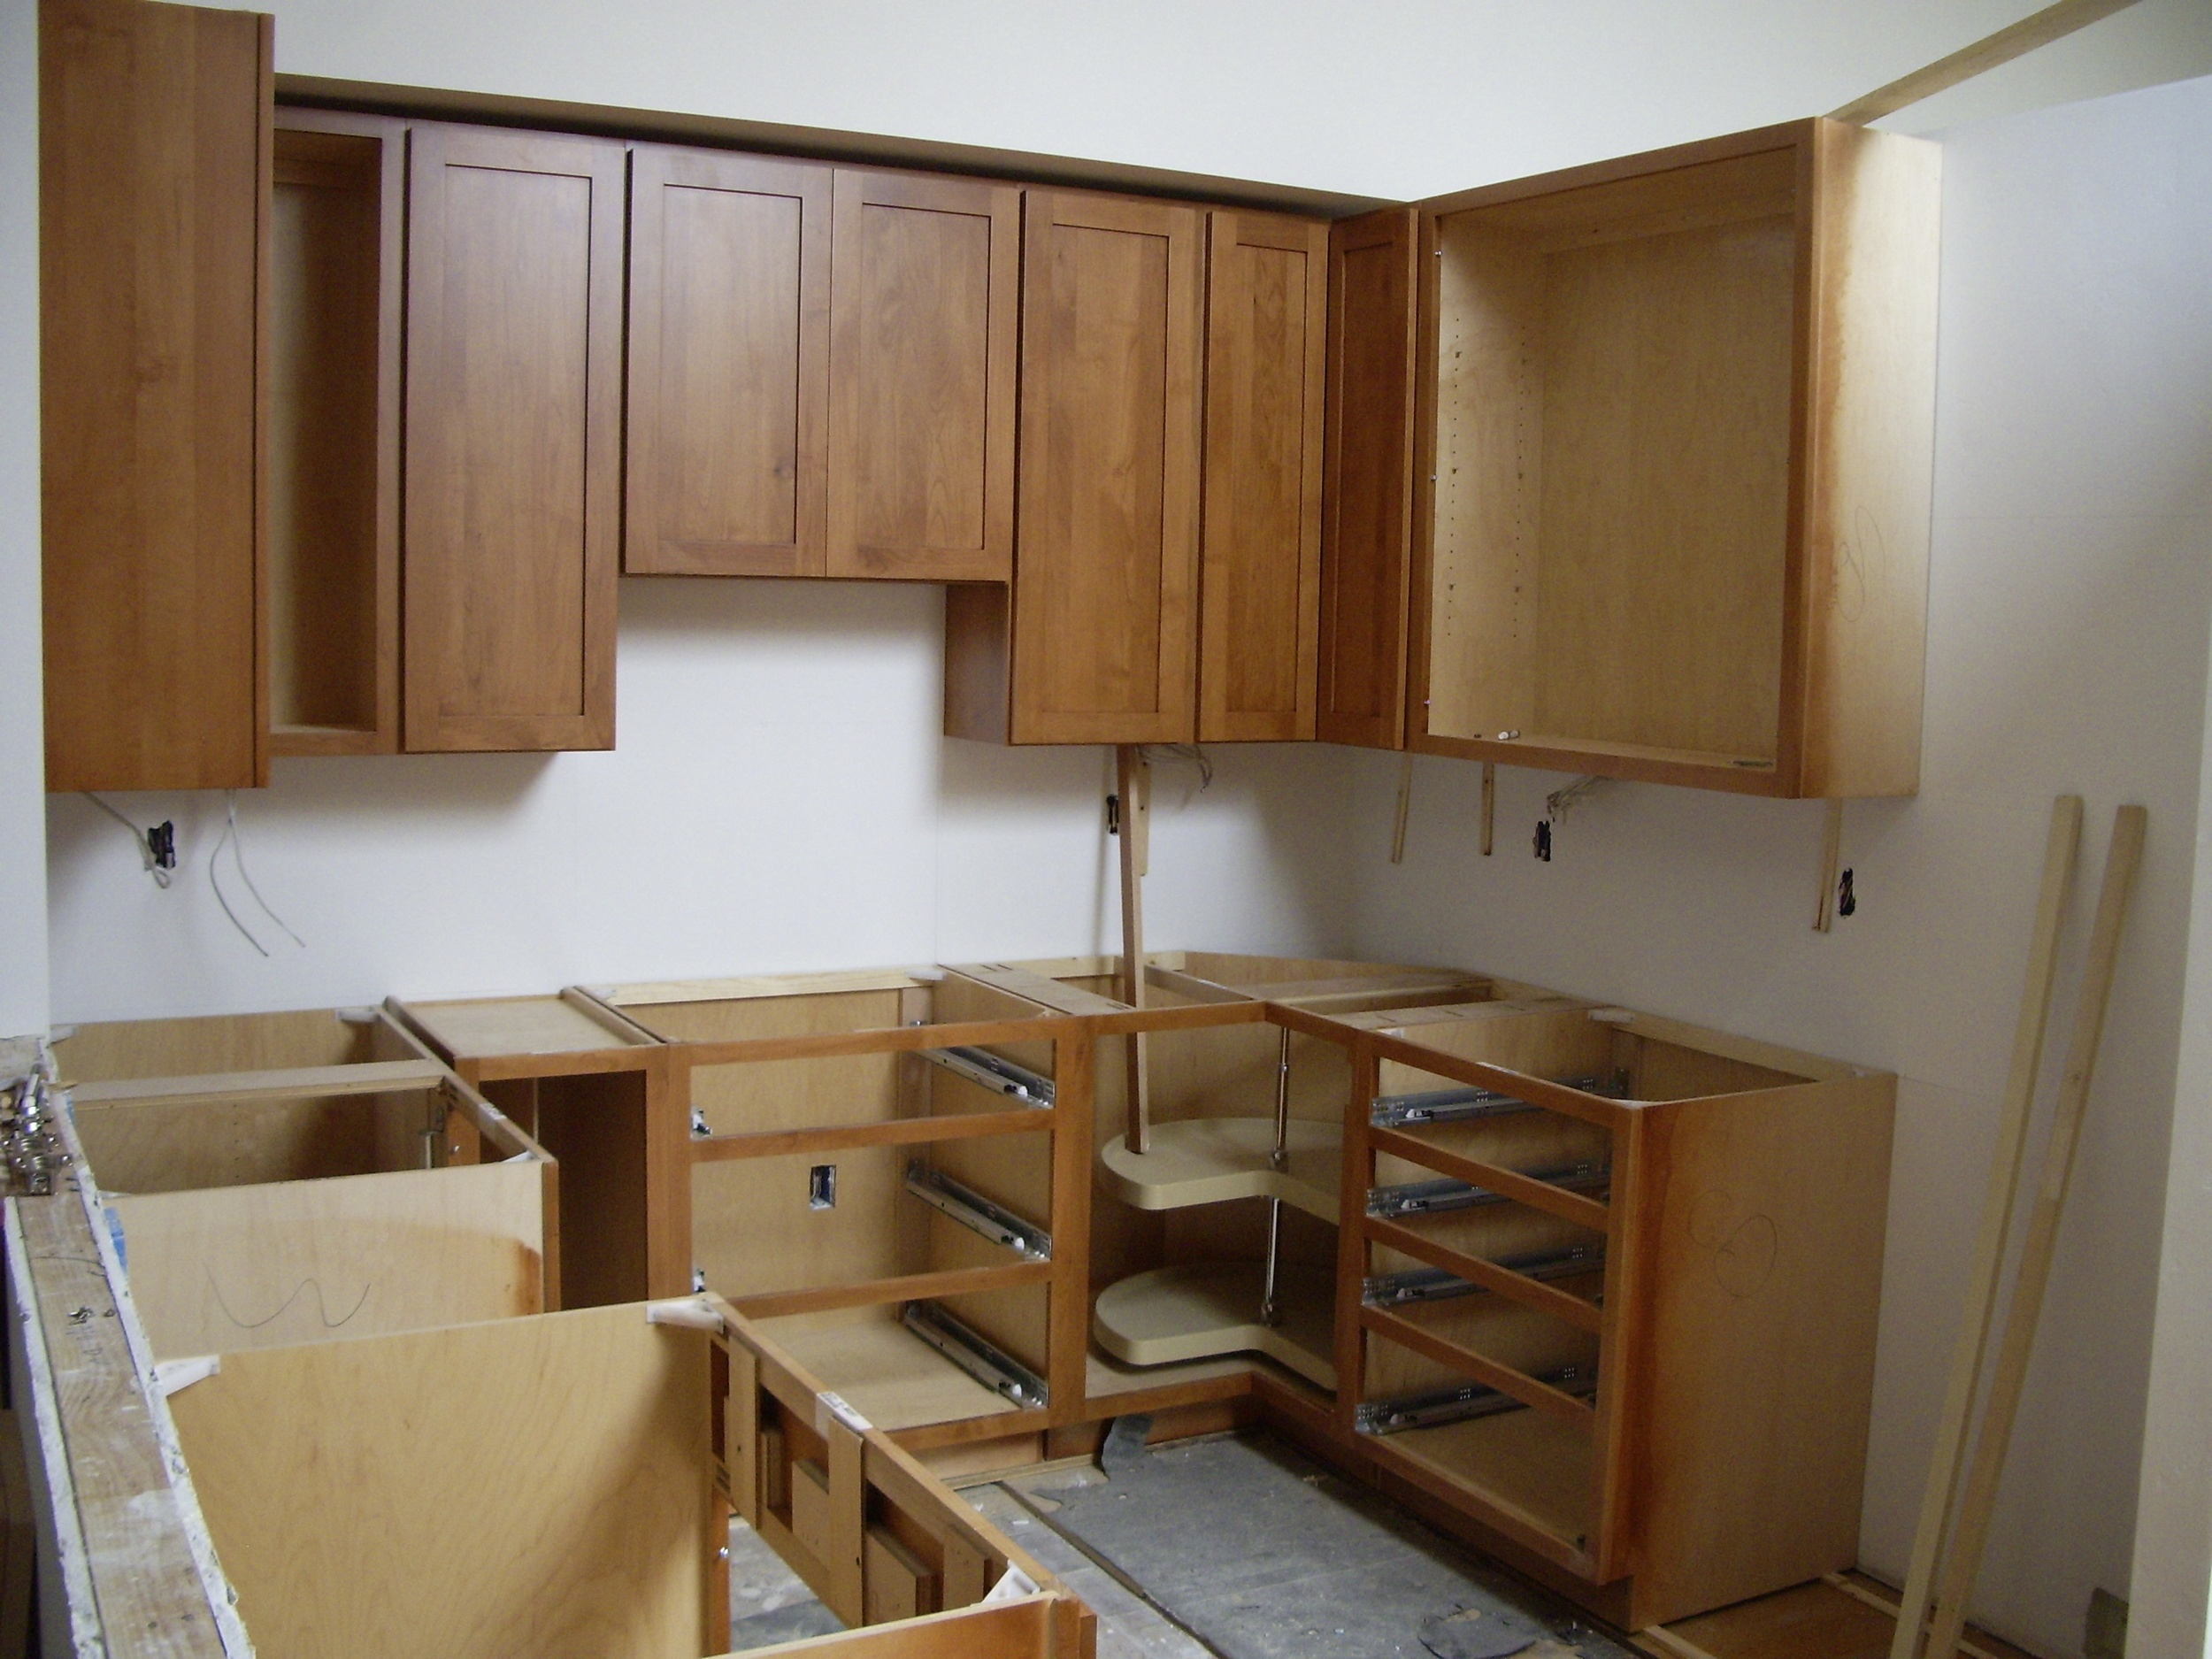 Kitchen cabinets going in.